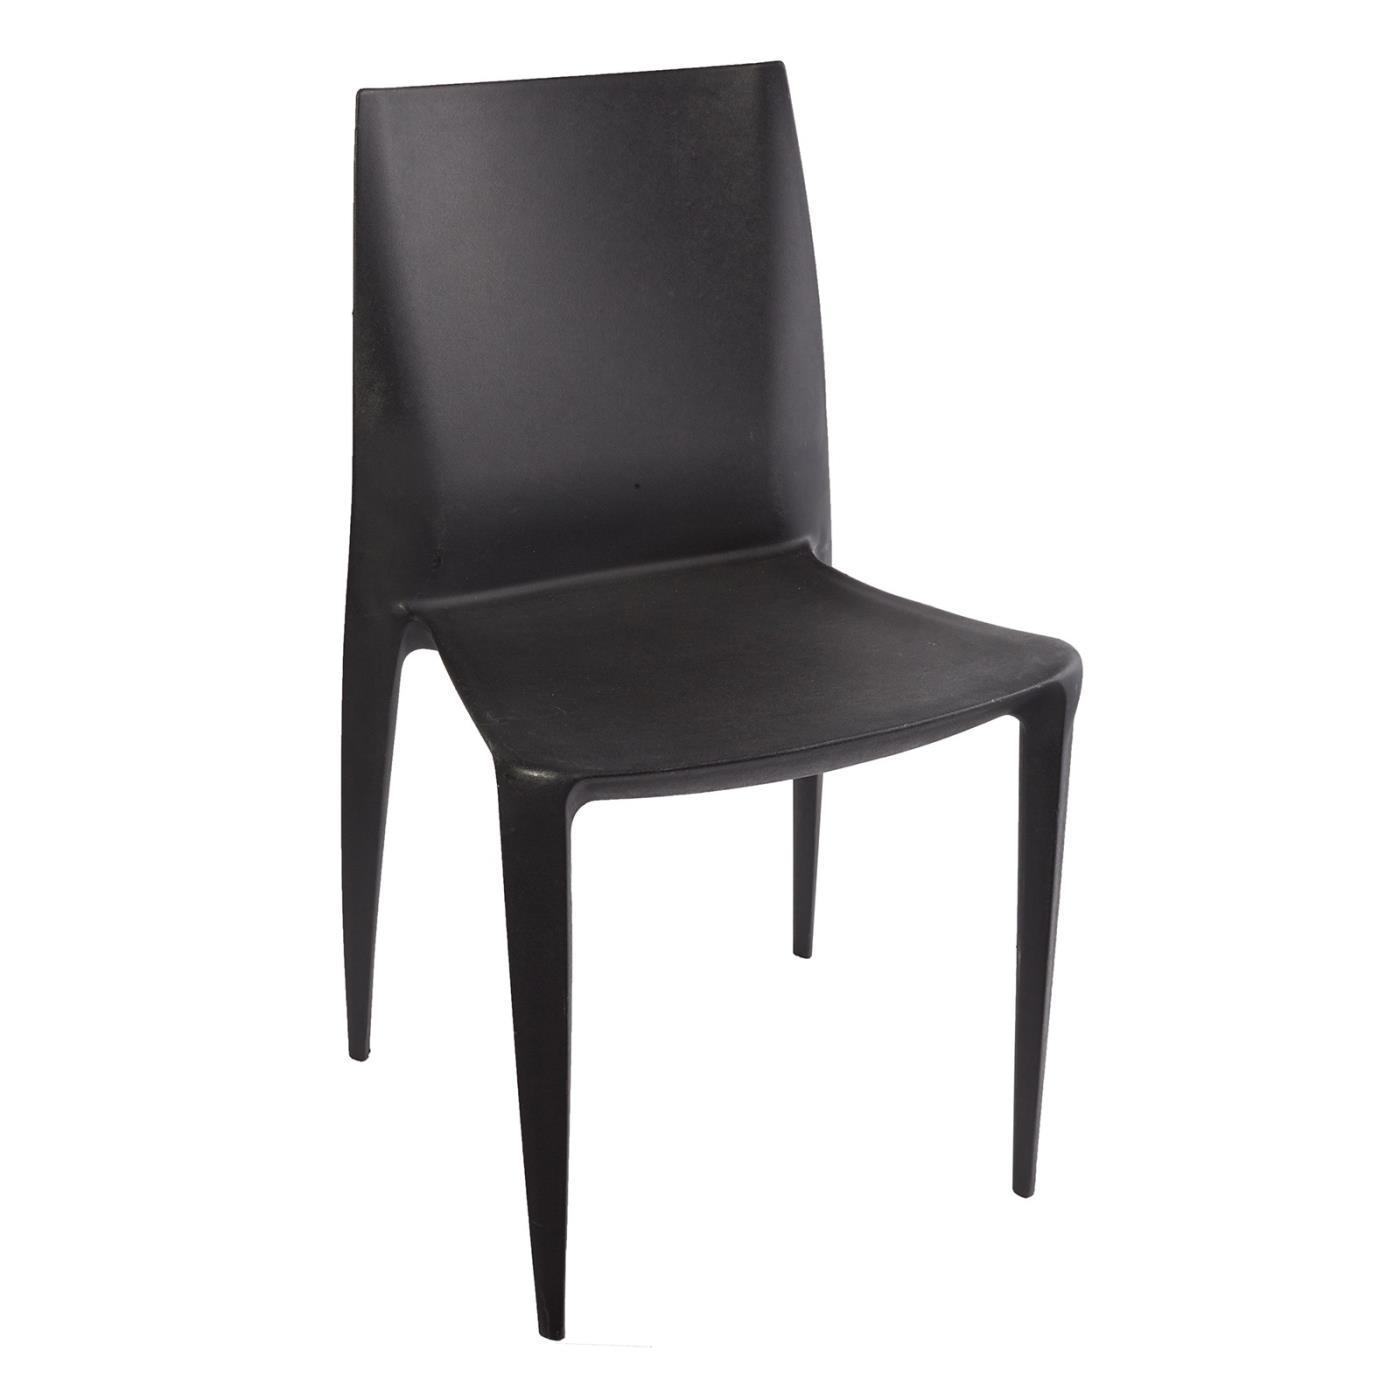 Bellini Chair - Black